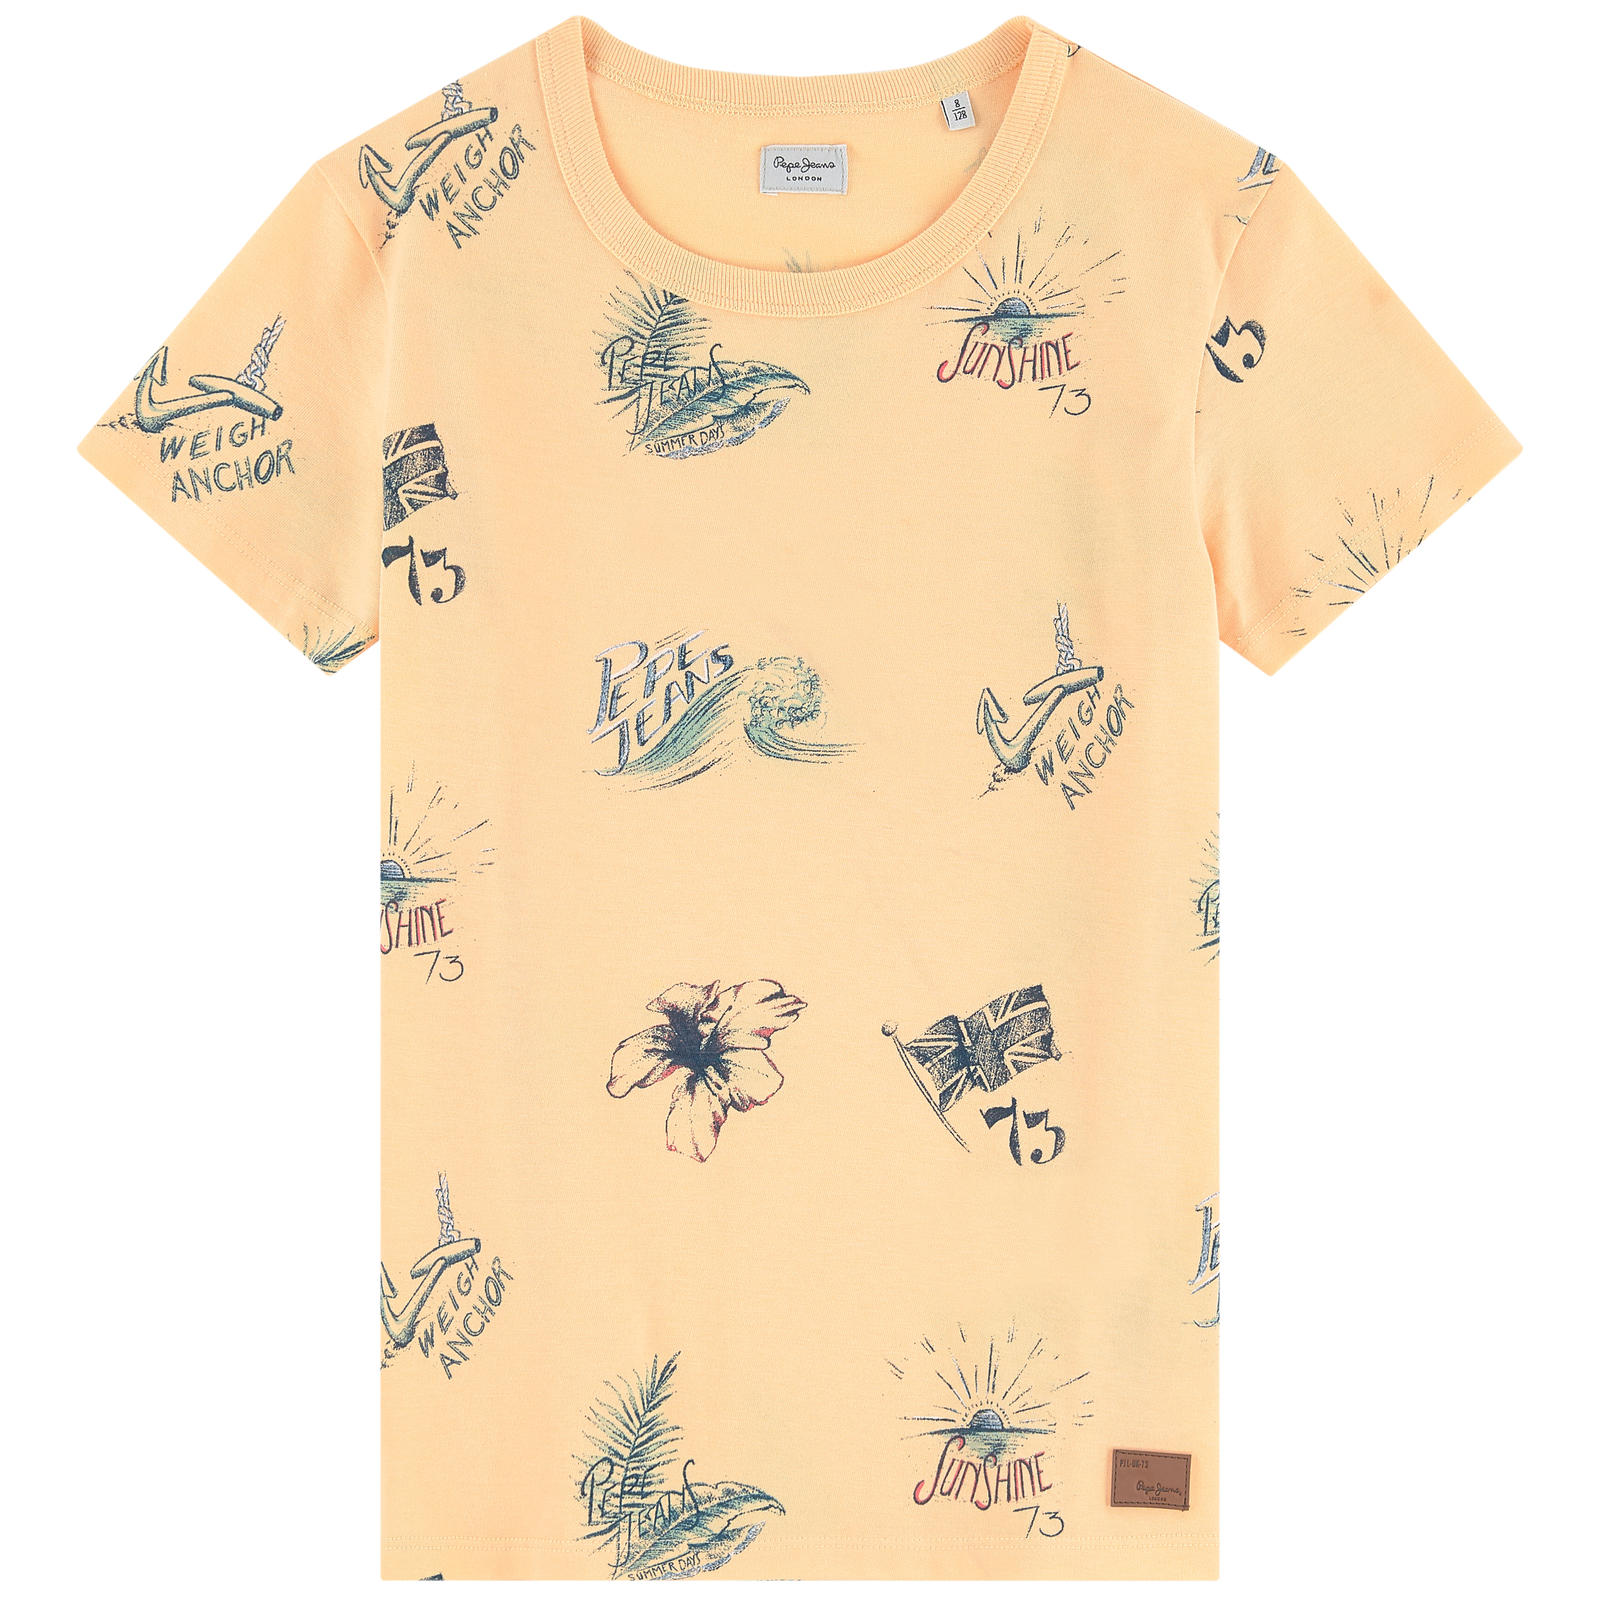 Your little rascal will look cool in this graphic and festive tee throughout the summer. - Pepe Jeans graphic t-shirt                                 melijoe.com                                                           $22.40